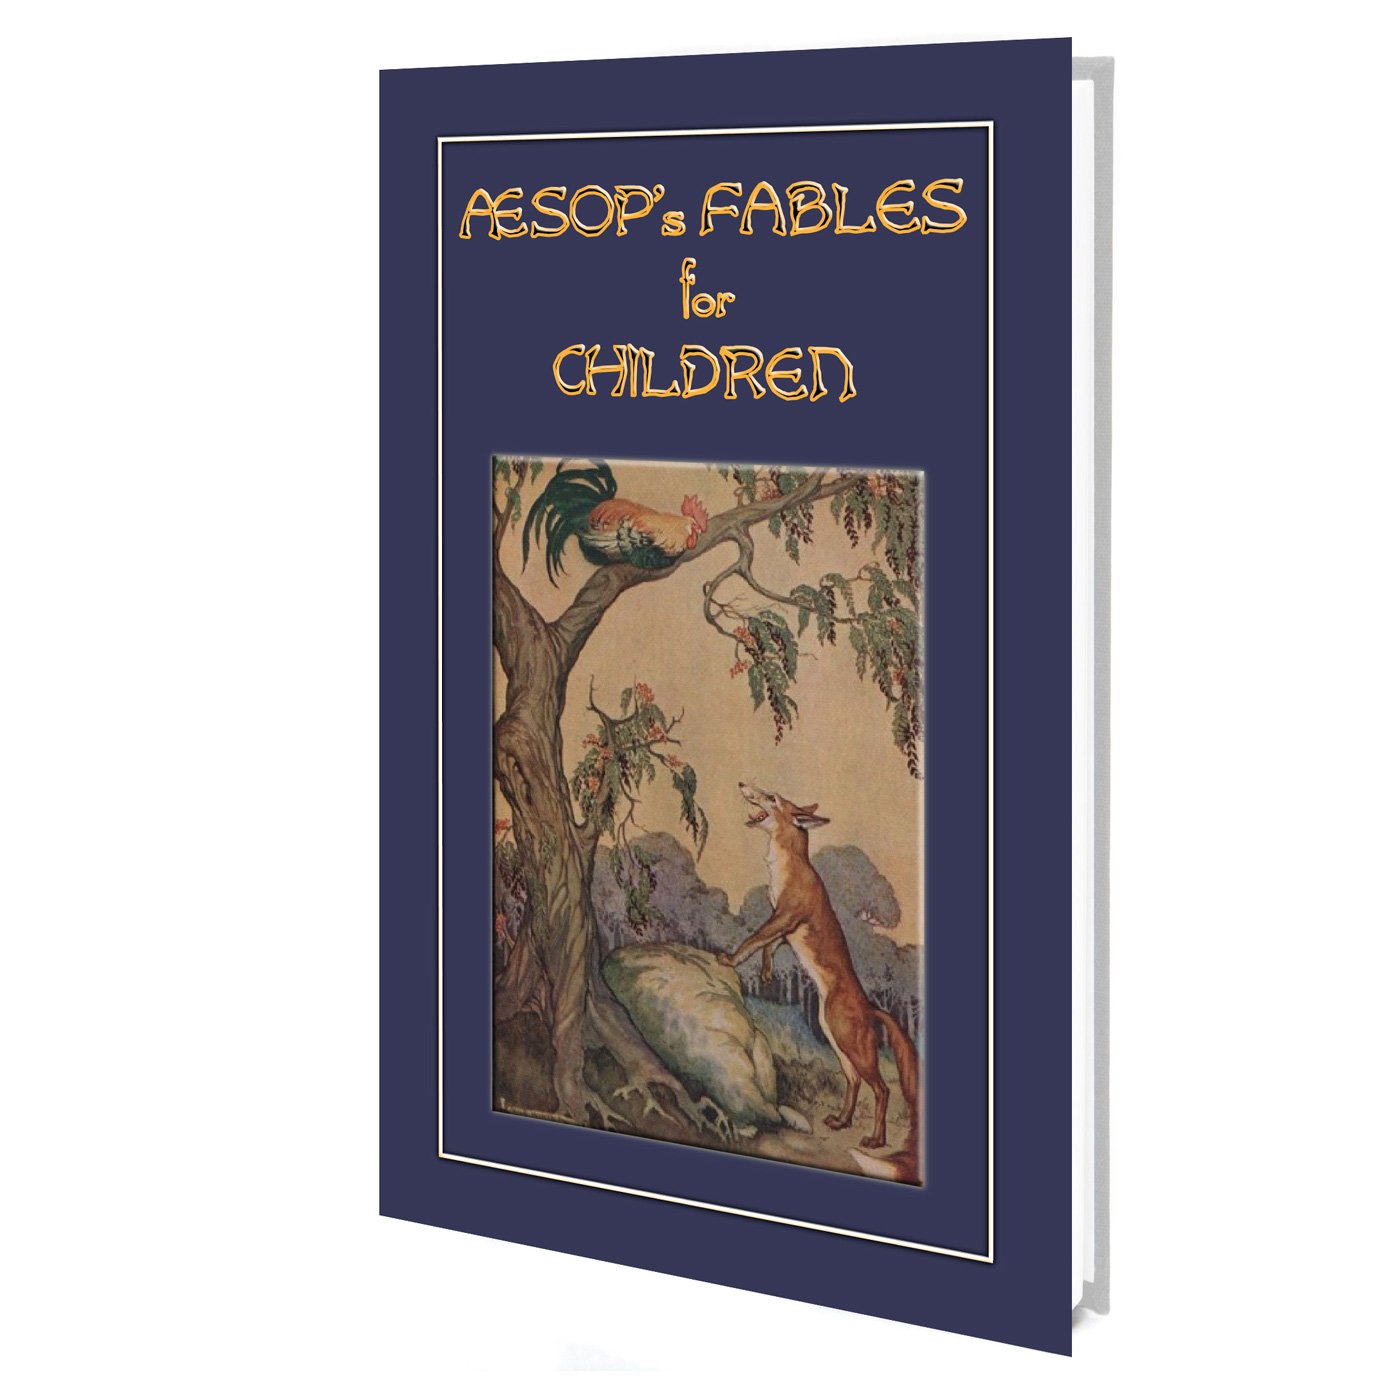 aesops fables as childrens literature Aesop's fables  this is a collection of tales from the greek story teller, aesop aesop was a slave in ancient greece he was a keen observer of both animals and people.